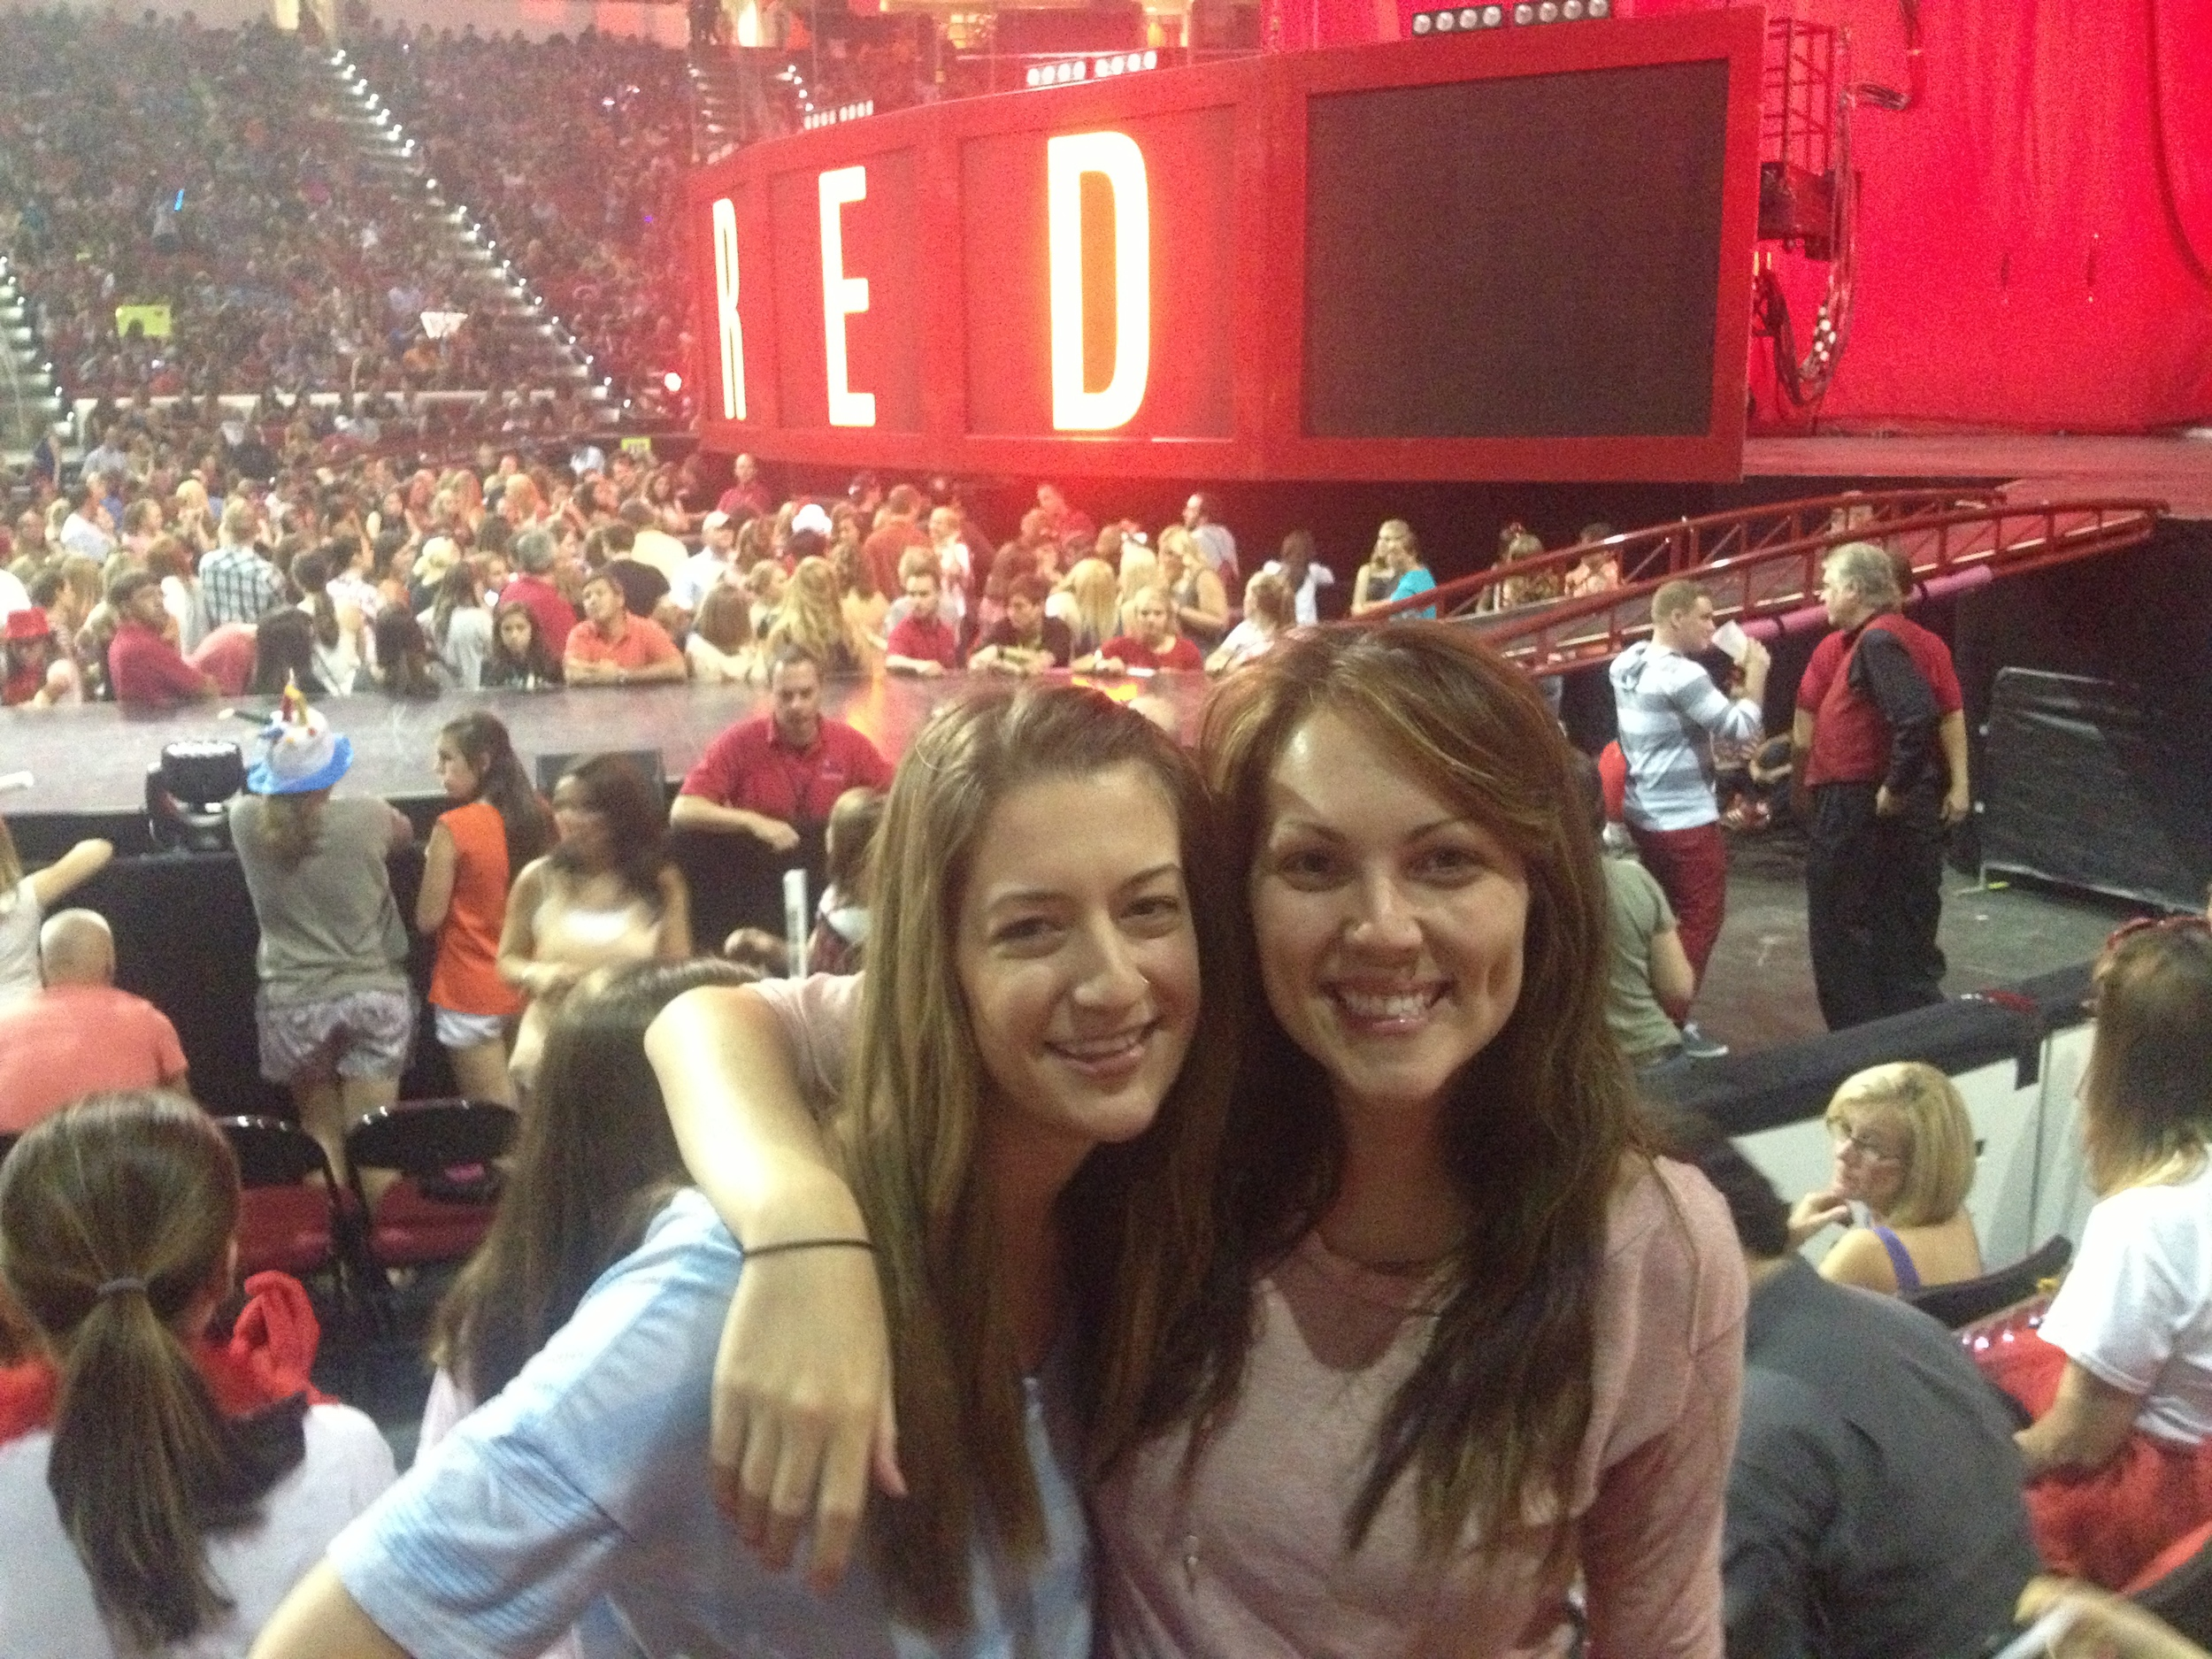 Jolly and I at the Taylor Swift concert!